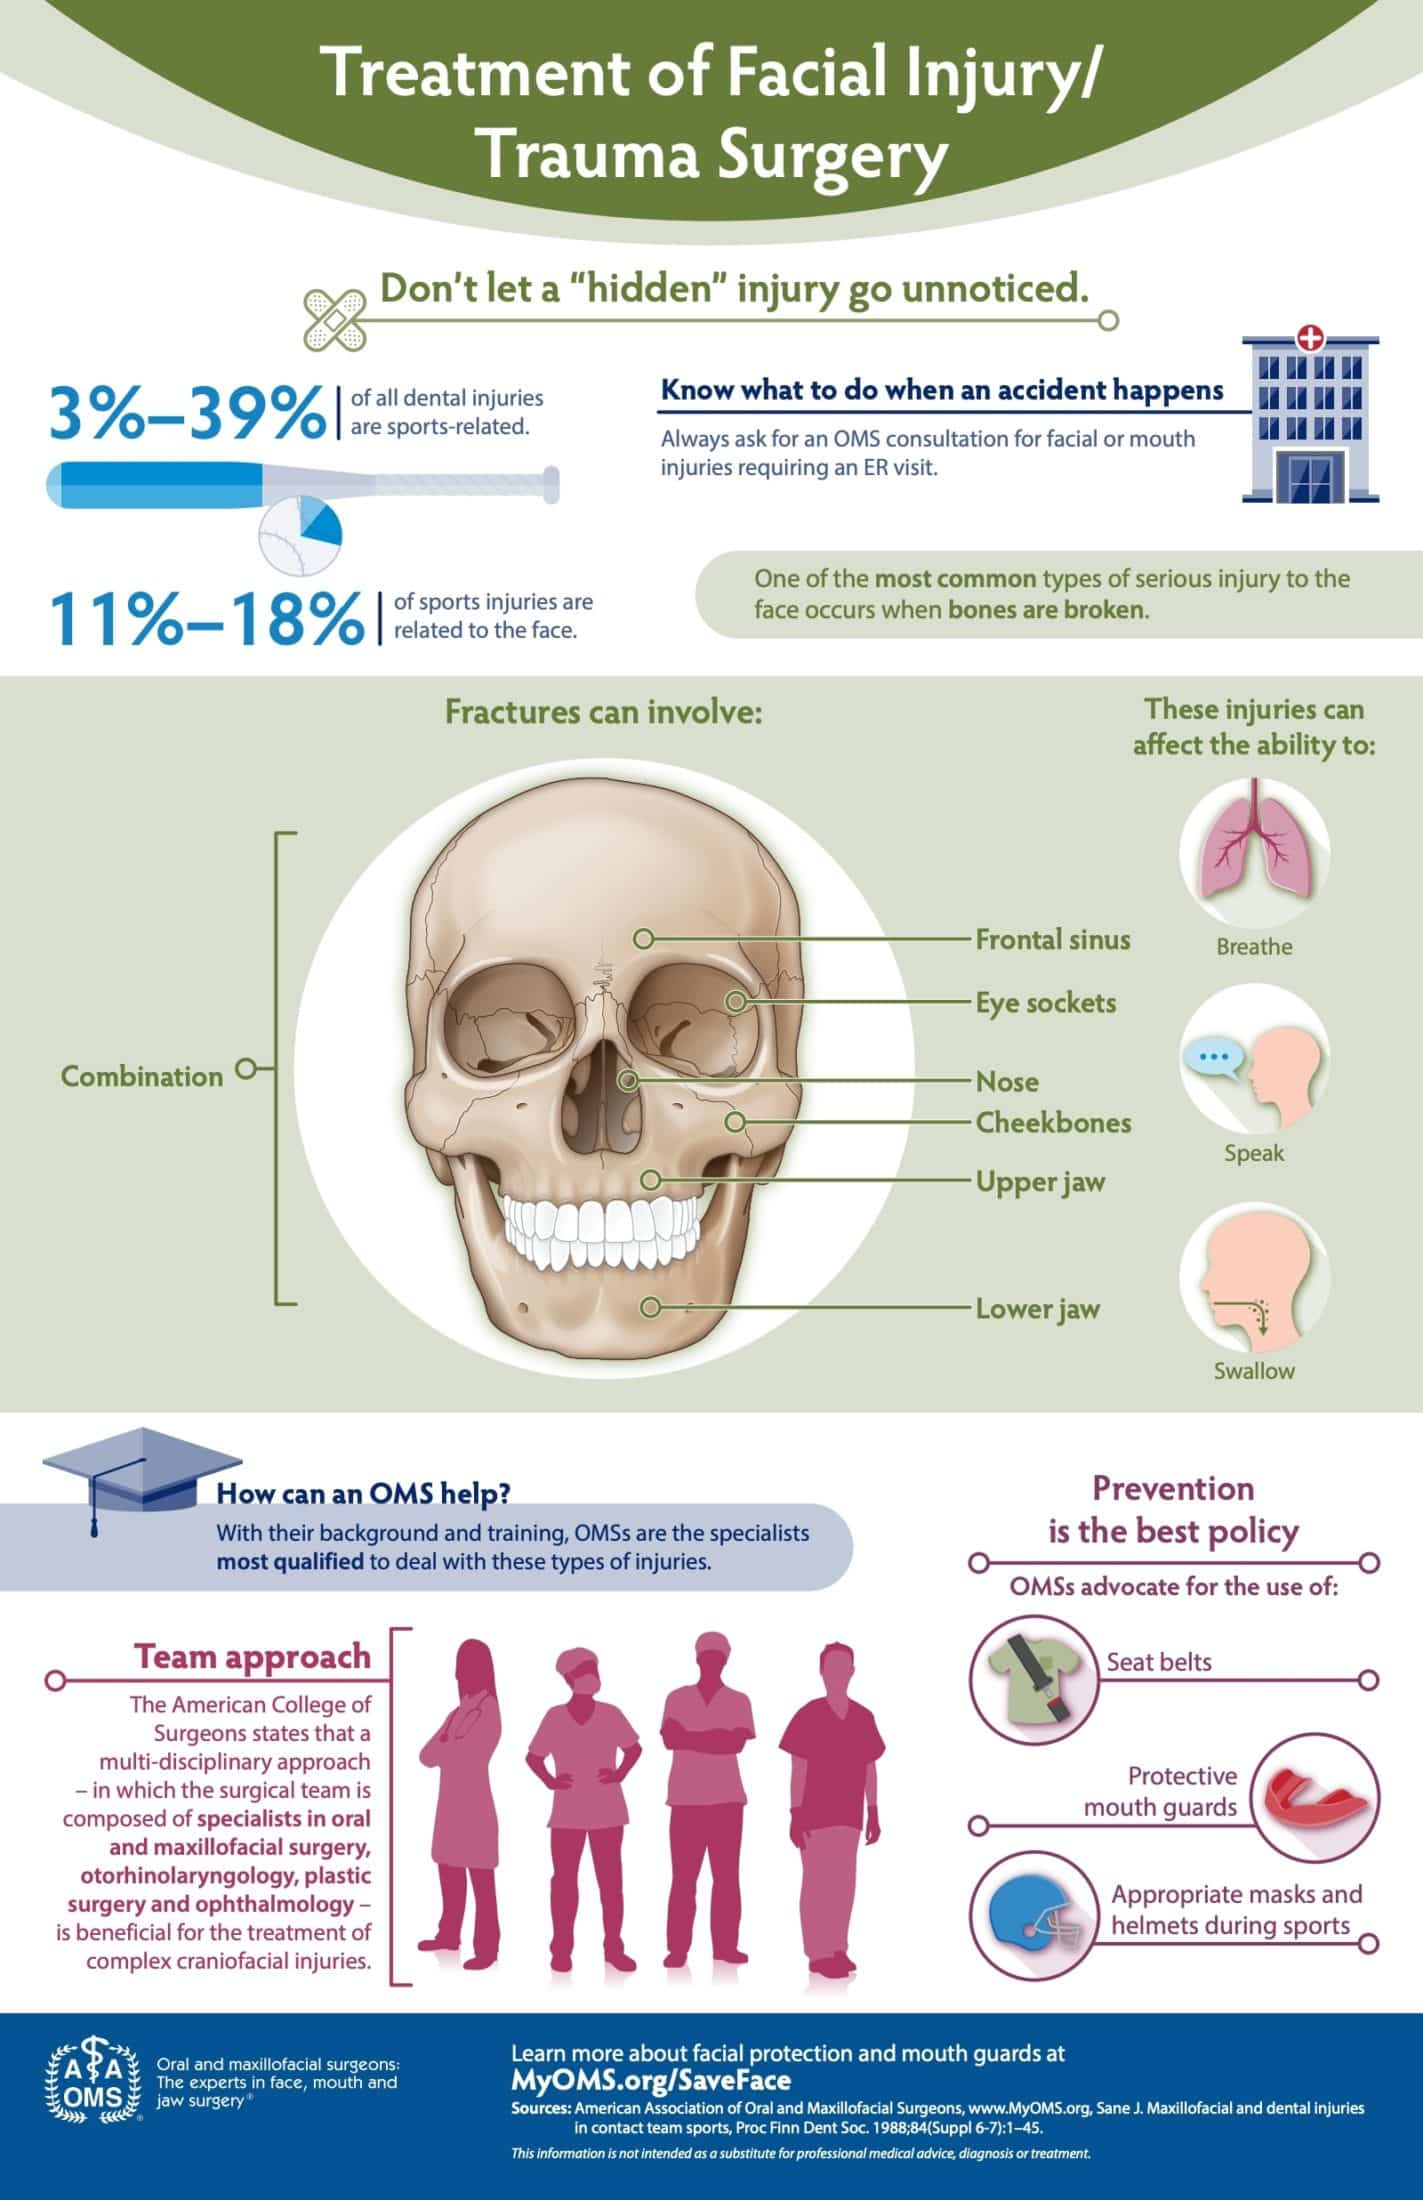 Treatment of Facial Injury Infographic